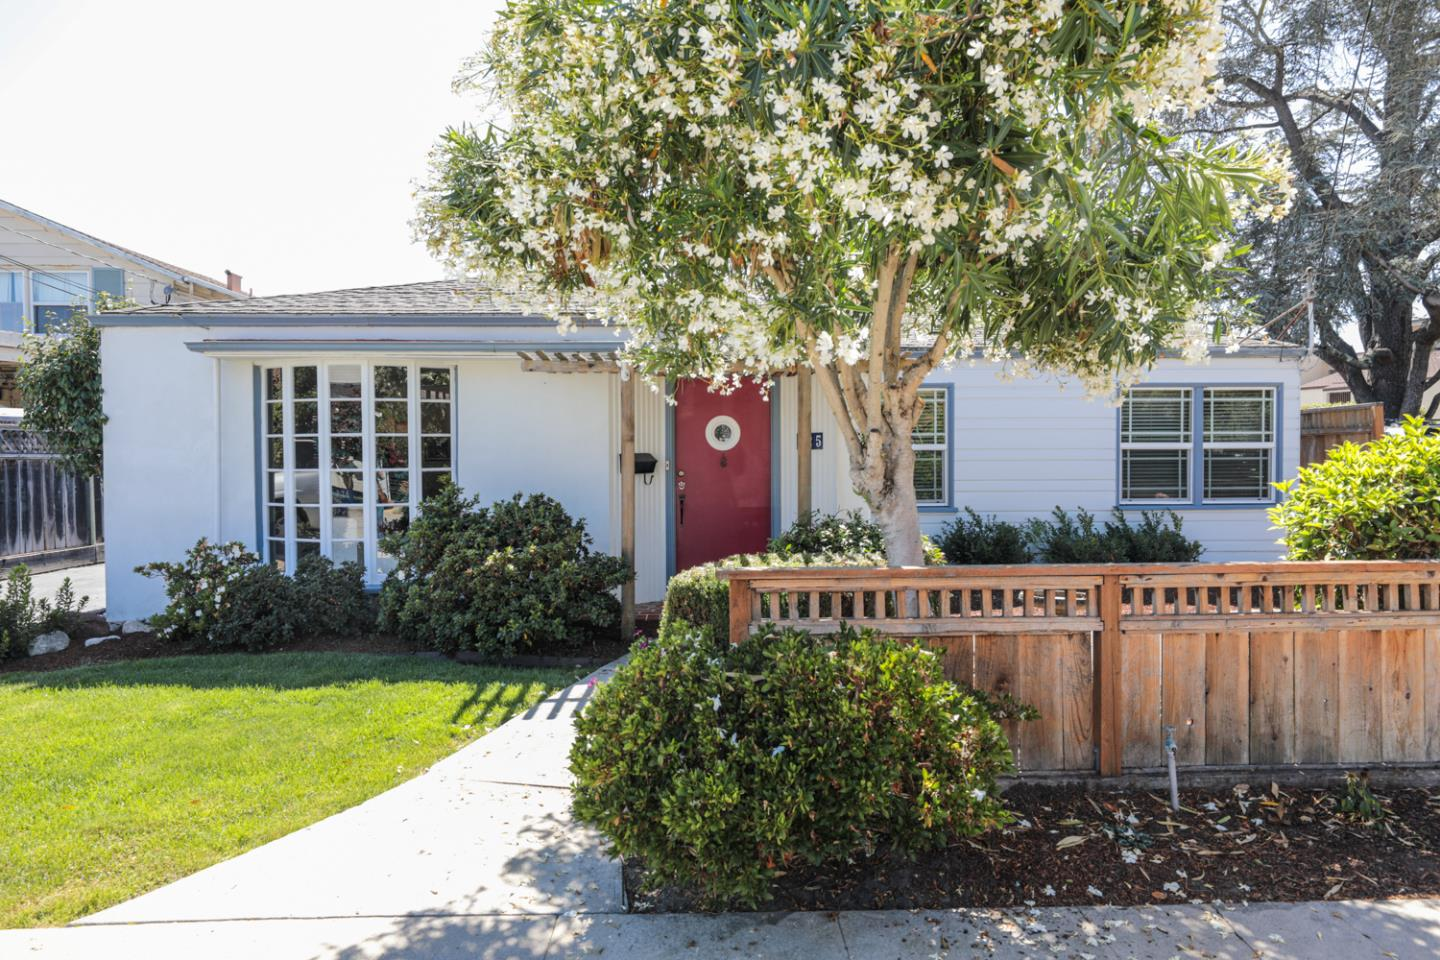 This charming home in sunny Eastside Santa Cruz is close to the beach but not the beach traffic! End of street privacy & quiet, excellent neighborhood, easy walk to restaurants, stores, the beach, The Buttery & quick access to Hwy 1 & 17. This well-maintained home has real oak hardwood & Italian tile floors, plenty of light throughout & is turnkey. The updated kitchen features beautiful cherry cabinets & granite counters that extend into the dining room creating an open floor plan. The kitchen has all stainless steel appliances. The master bedroom faces the beautifully landscaped backyard with a large patio & lighted pergola, perfect for entertaining or just relaxing in the shade. Gardeners will love the raised garden beds, mature grape vines & dwarf apple tree. The updated bathroom has a floating vanity, laundry room with service sink & a large 2 car detached garage with storage and ample parking. Easily add a 2nd bathroom too. So many great things about this home - see for yourself.